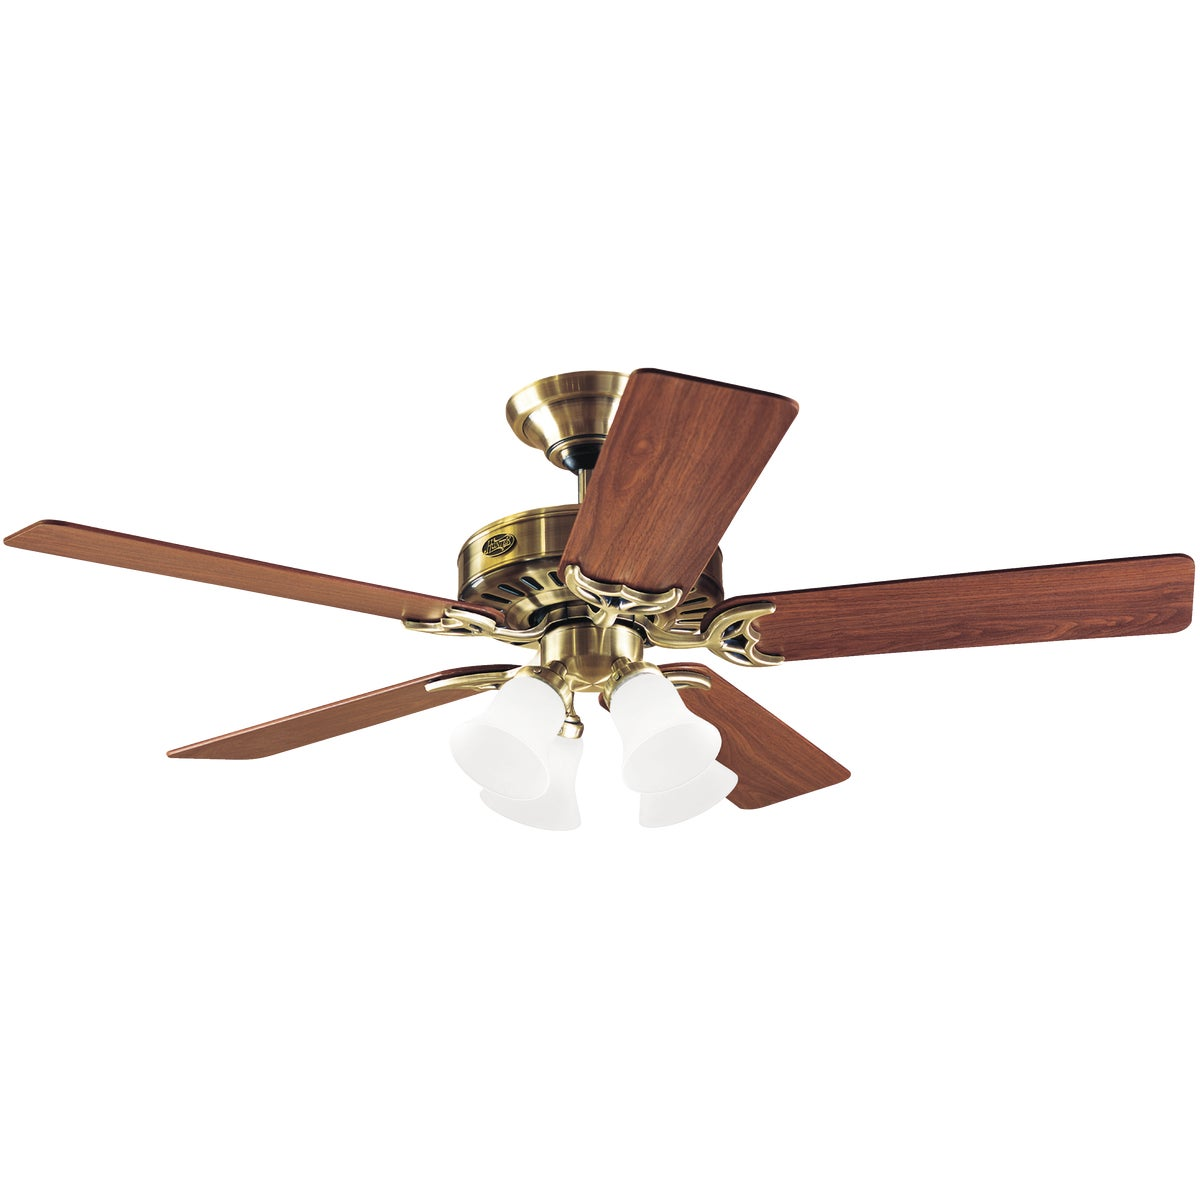 "52"" AB CEIL FAN W/LIGHT - 53063 by Hunter Fan Co"